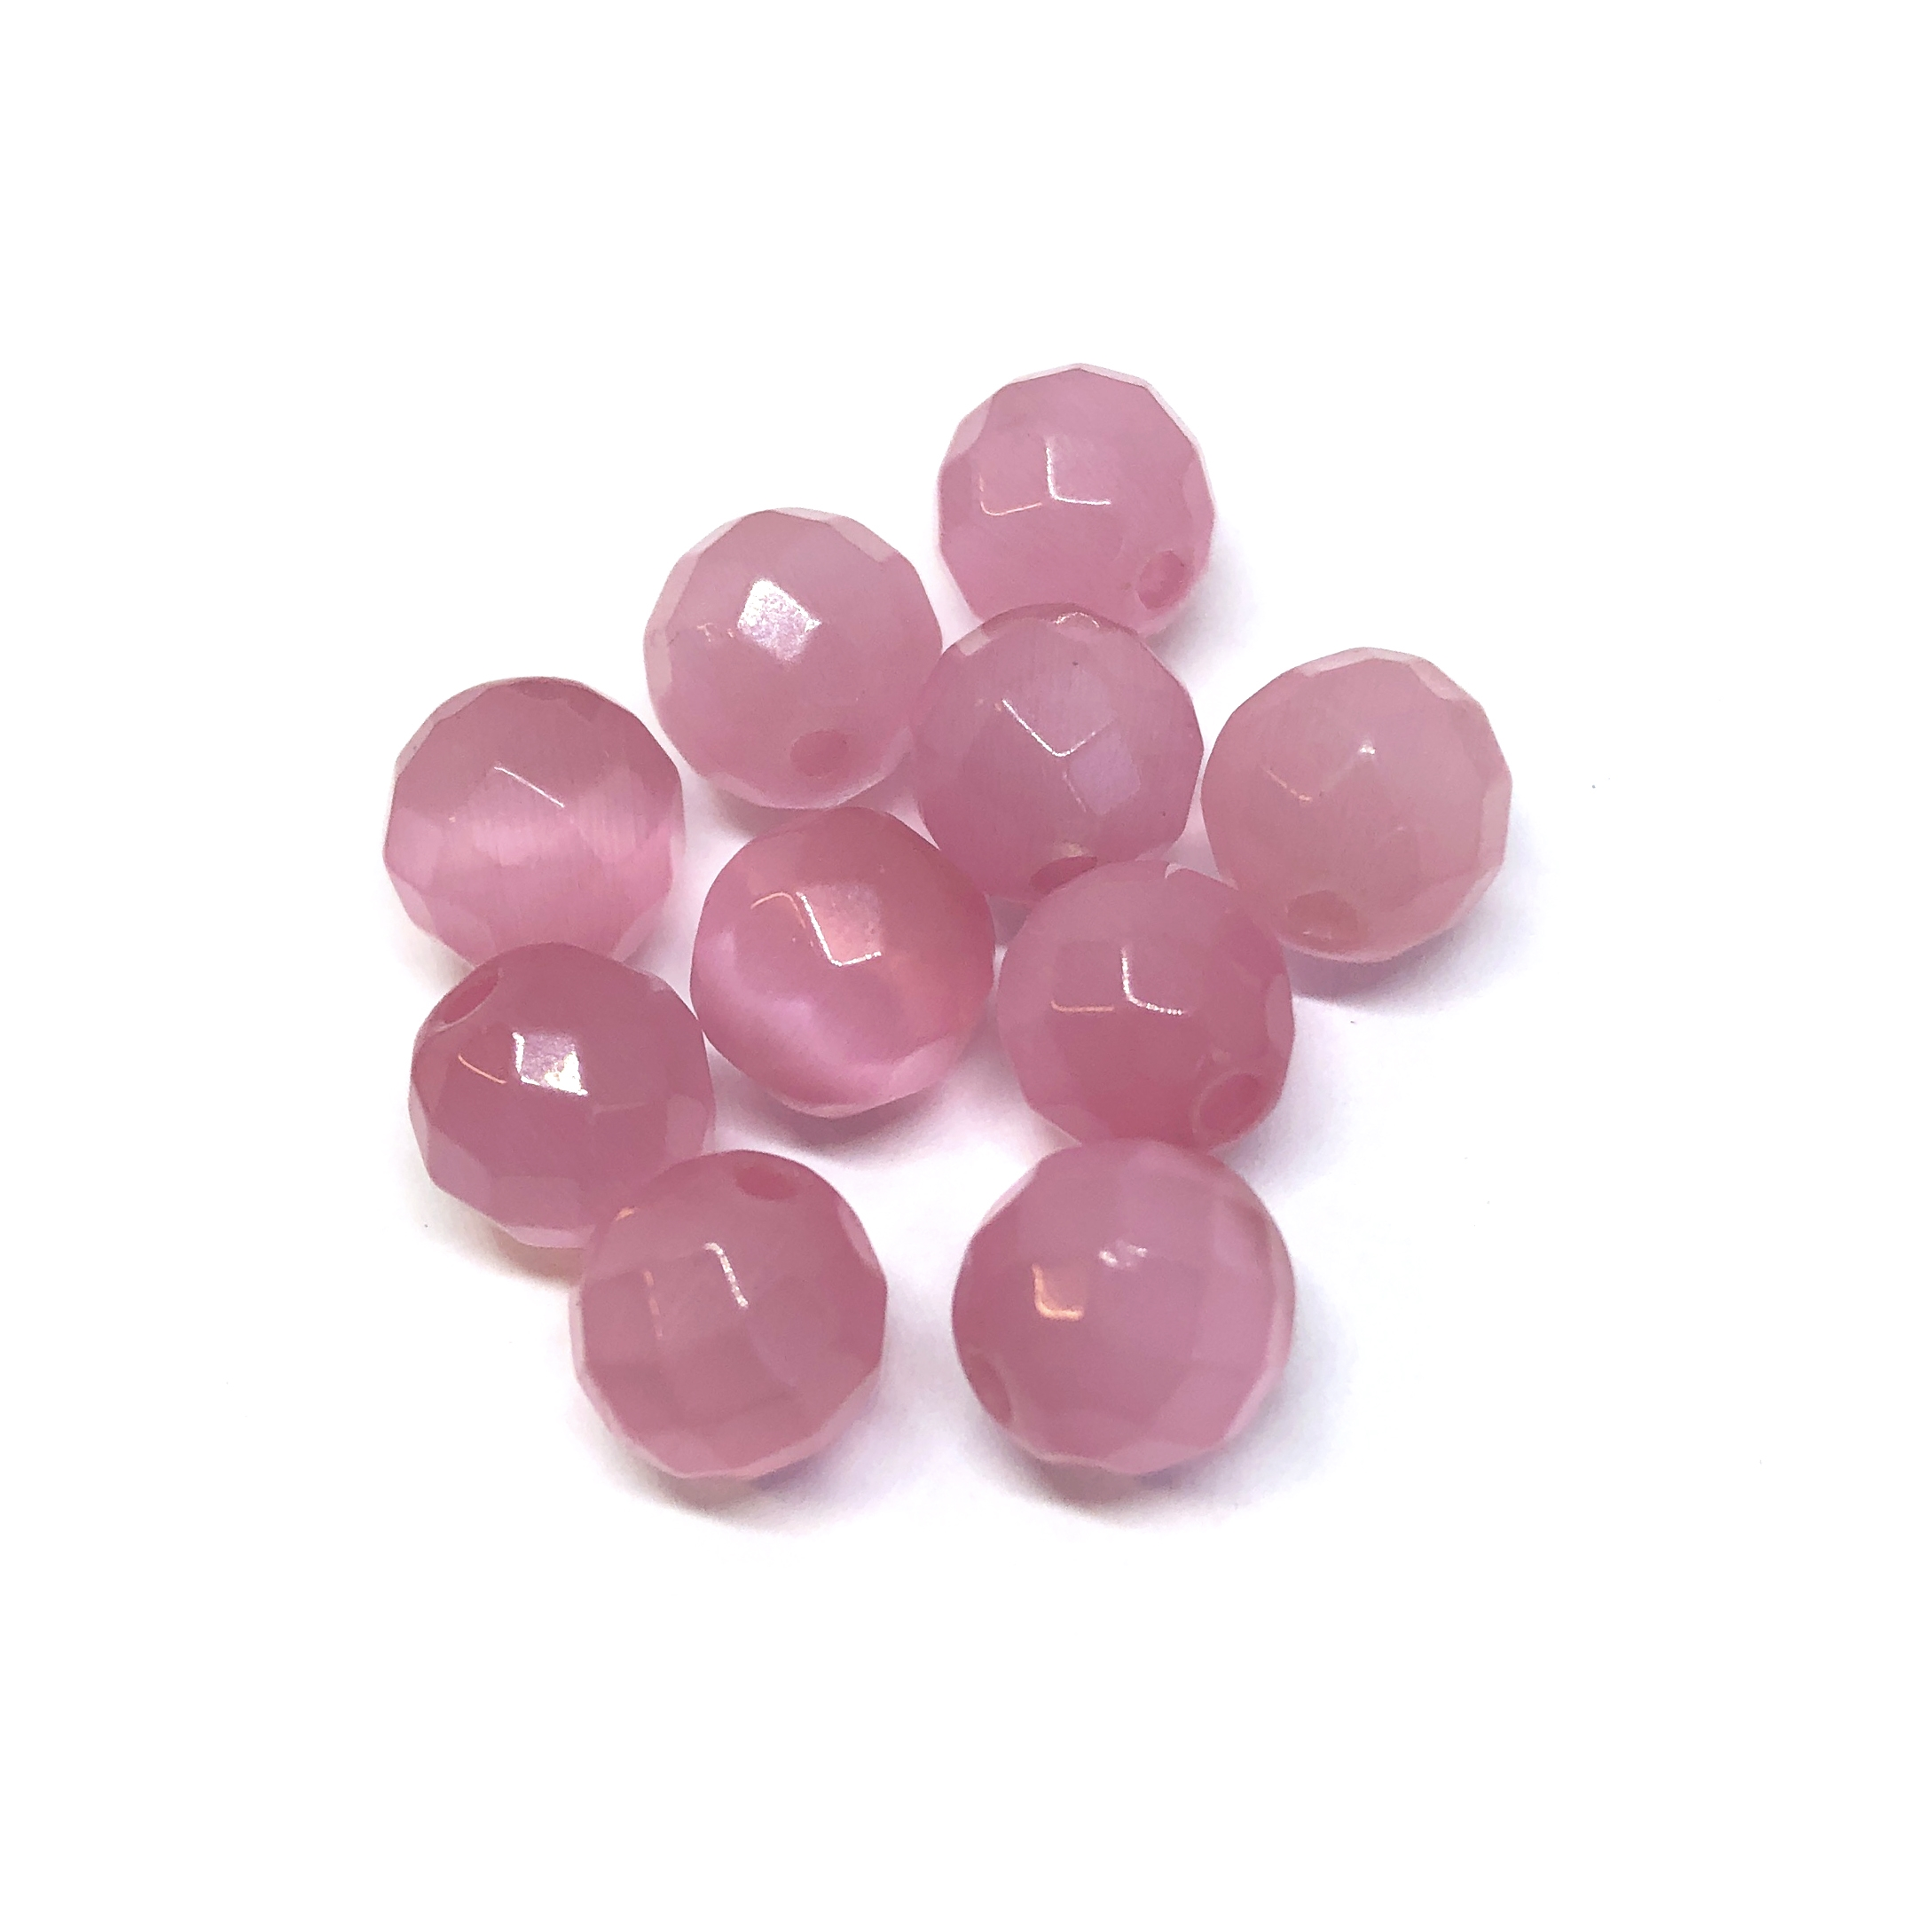 Pink cat's eye beads, glass beads, fiber optic glass, glass, cat's eye, pink beads, cabochon, round, glossy shine, faceted beads, US made, B'sue Boutiques, jewelry stone, 8mm, 09731